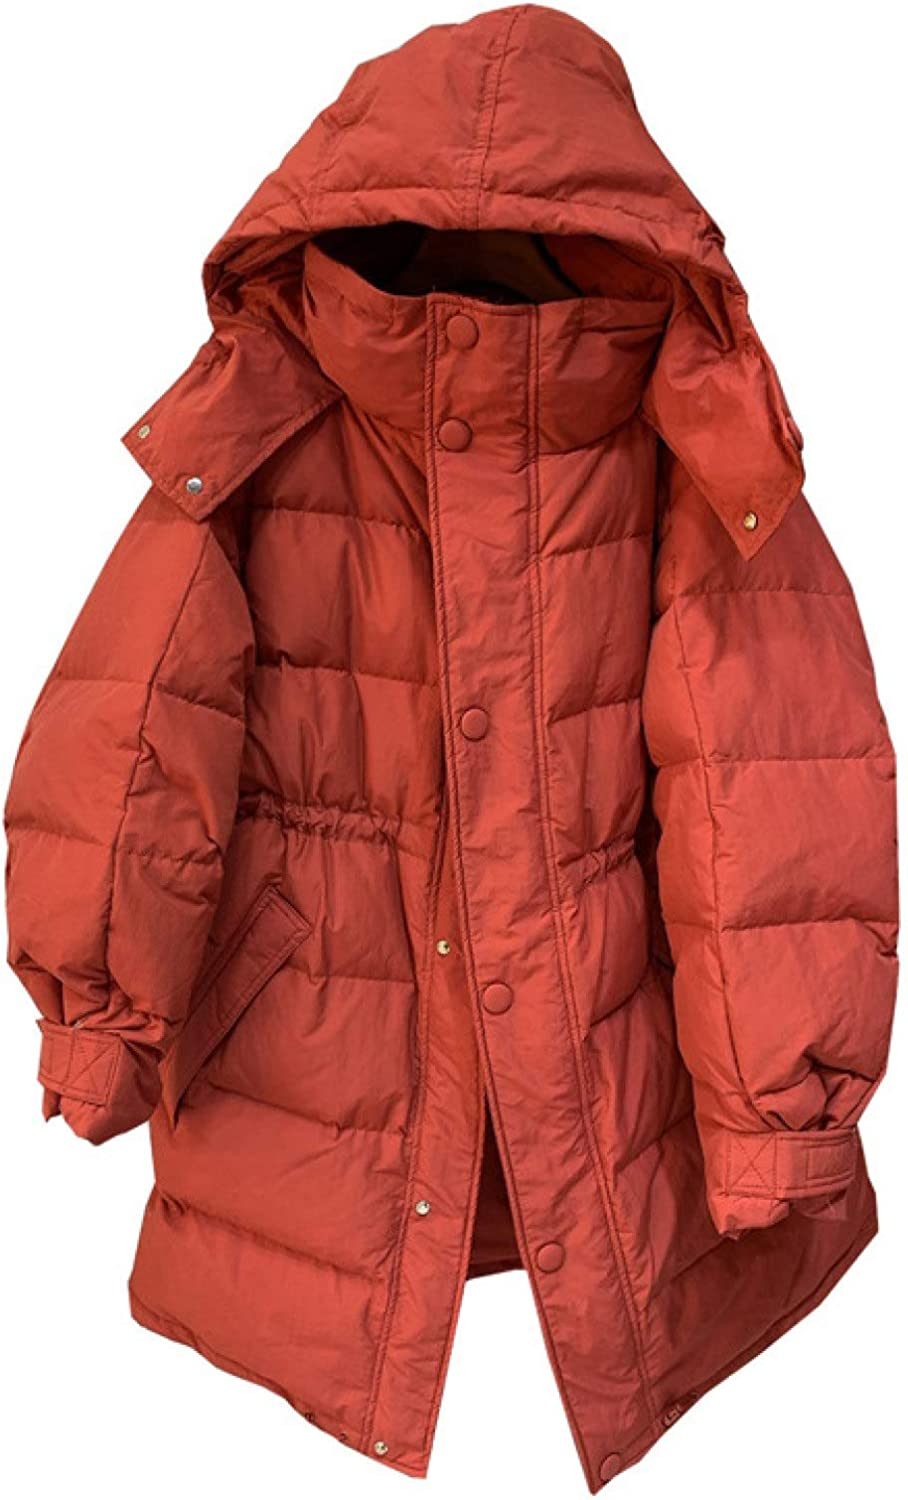 Ladies Padding Outerwear , Hooded Winter Coat Quilted Puffer Jacket with Pockets